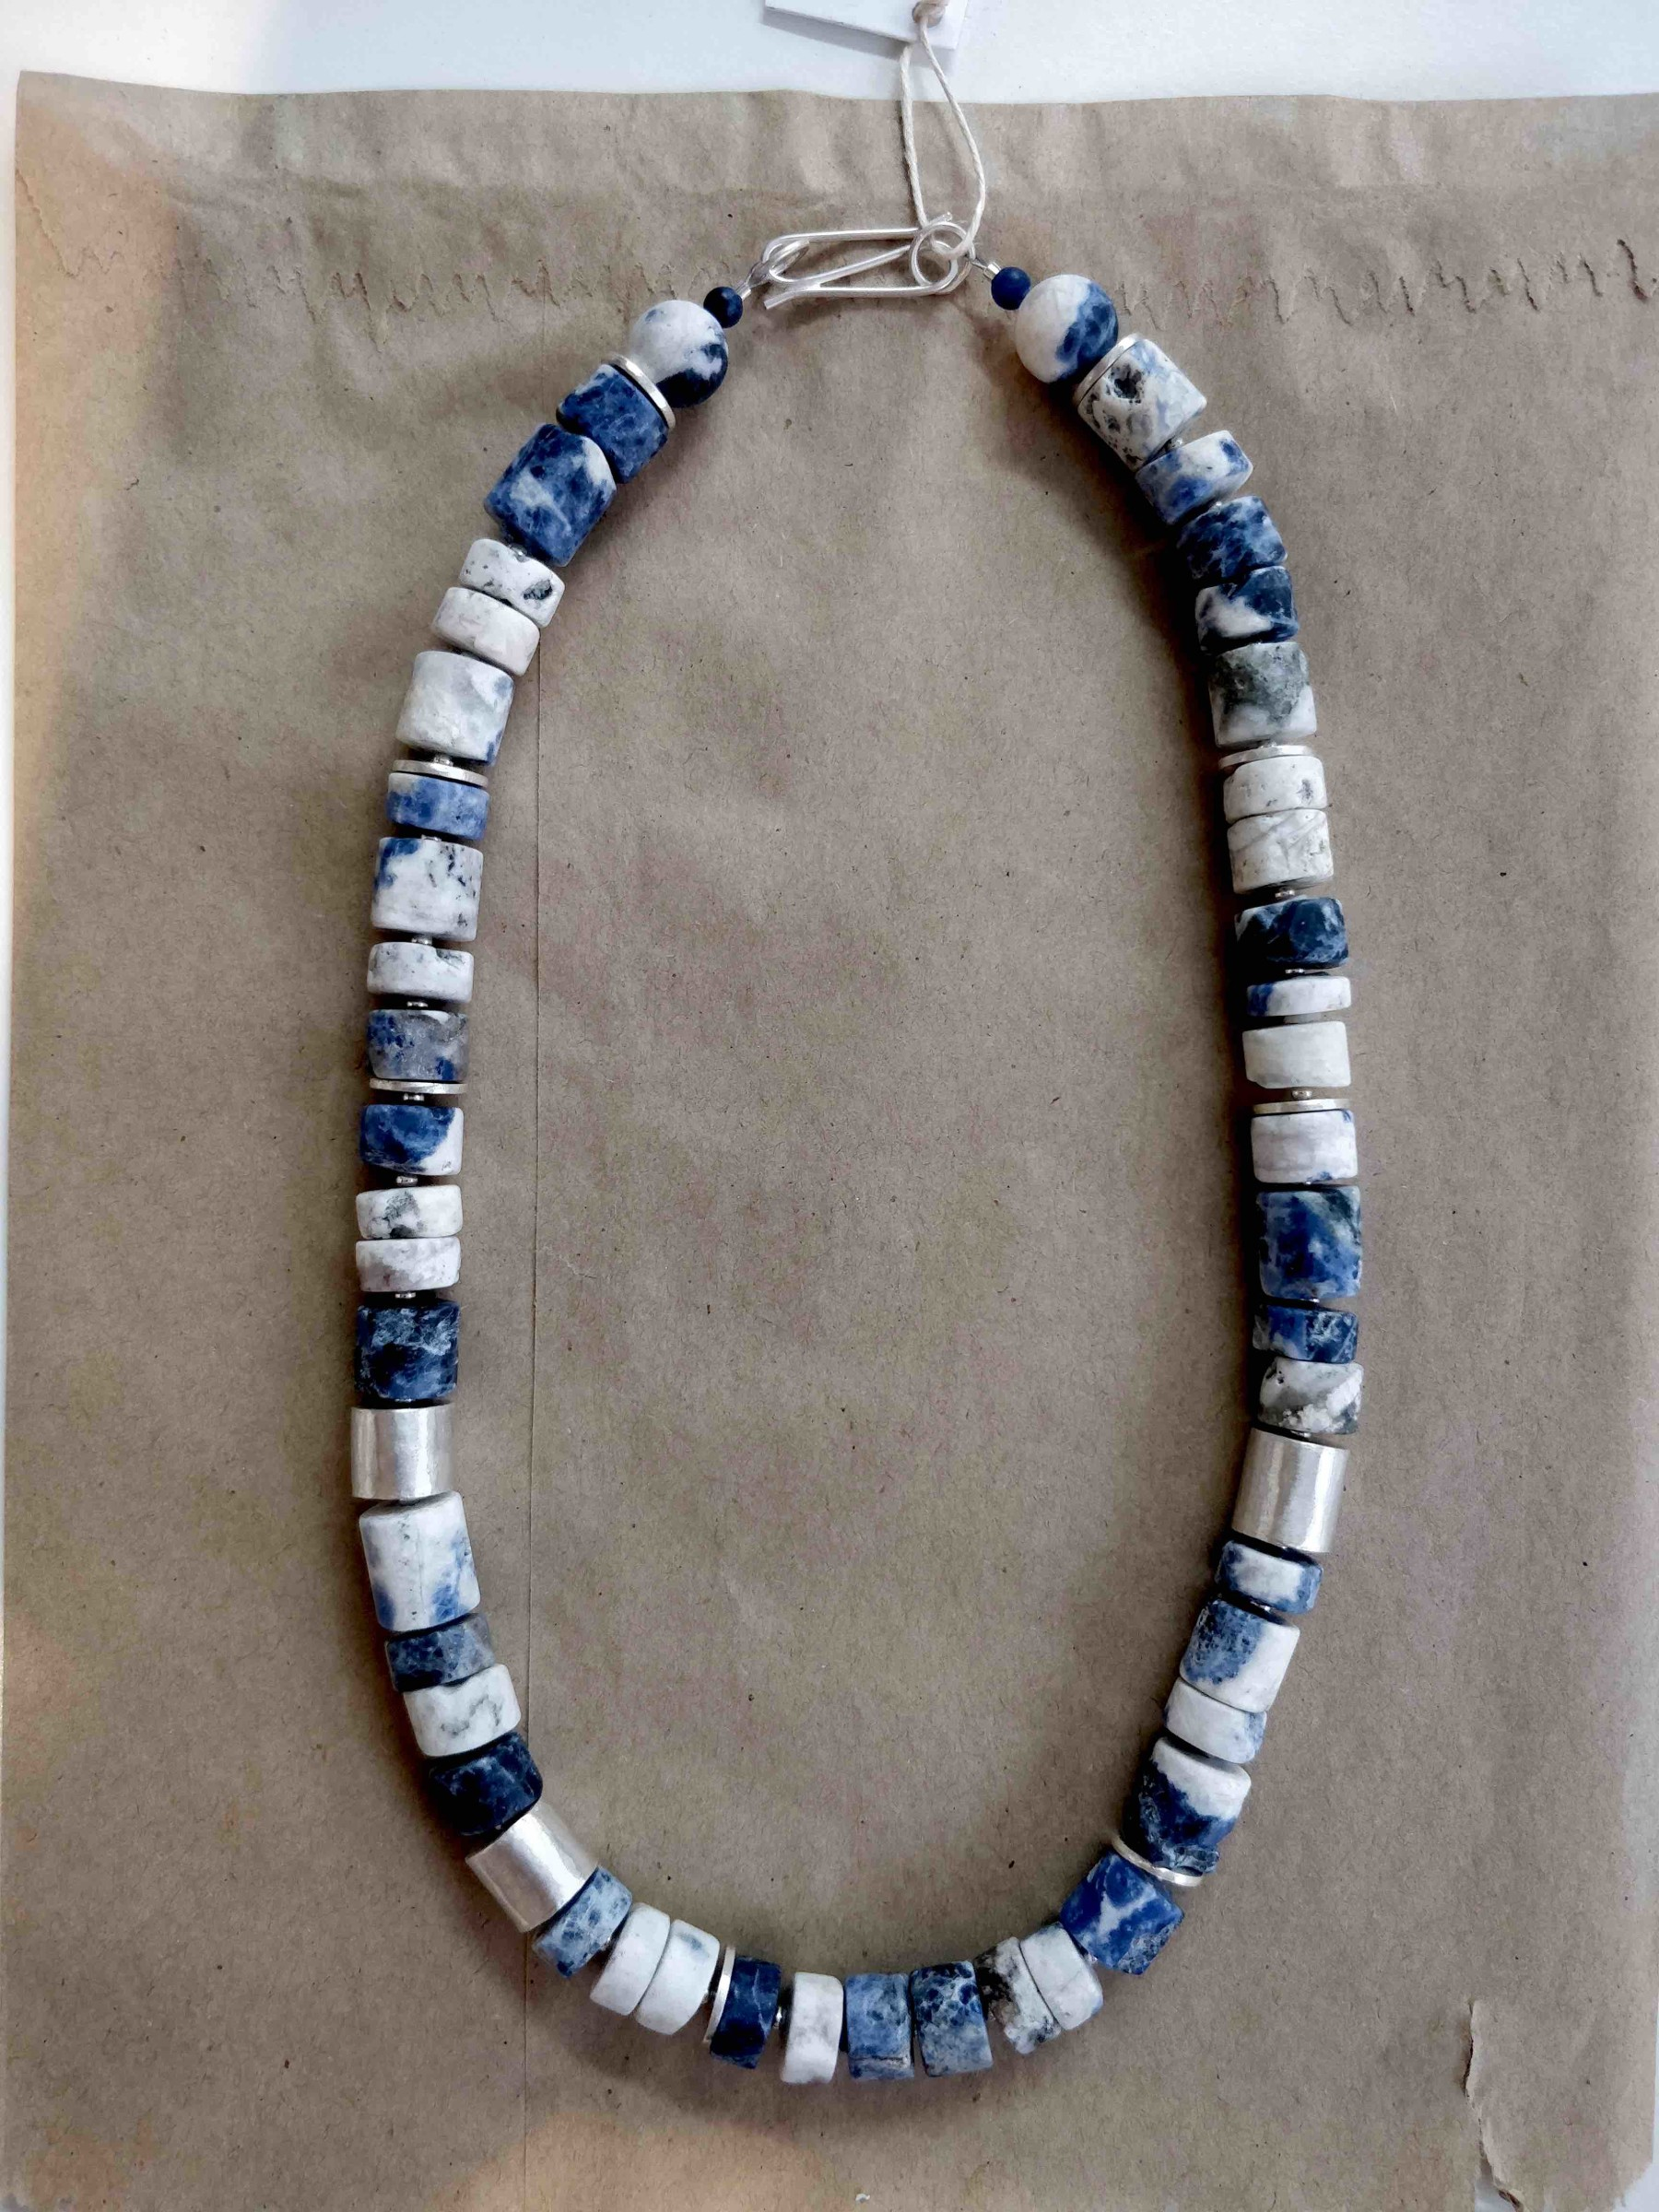 "<span class=""link fancybox-details-link""><a href=""/artists/148-roberta-hopkins/works/5700-roberta-hopkins-white-sodalite-ancient-tubes-2018/"">View Detail Page</a></span><div class=""artist""><strong>Roberta Hopkins</strong></div> <div class=""title""><em>White Sodalite Ancient Tubes</em>, 2018</div> <div class=""medium"">sterling silver</div><div class=""price"">£220.00</div><div class=""copyright_line"">£ 22 x 10 Months, OwnArt 0% APR</div>"